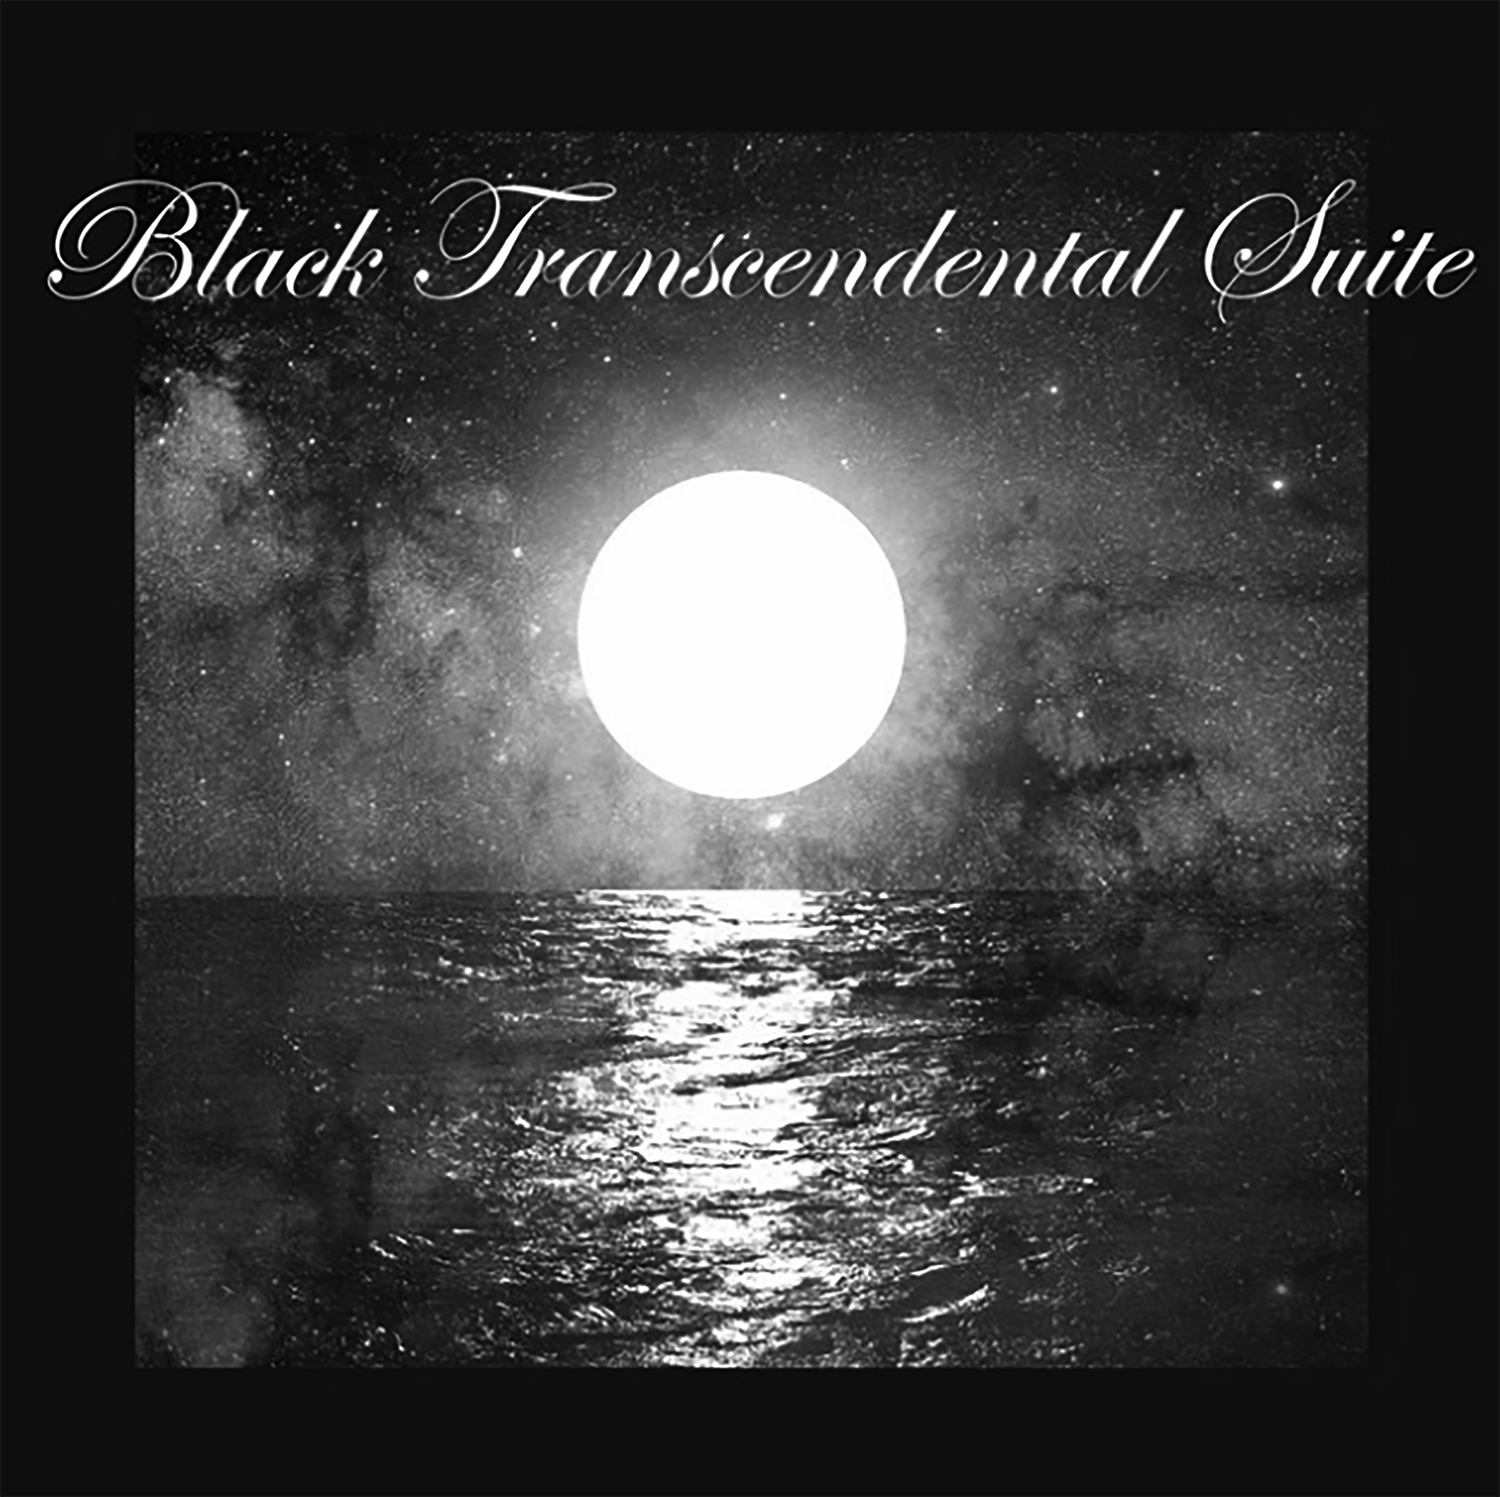 """Album cover for Black Transcendental Suite by The Urban Cellist. It's a black and white image of a moon over a body of water. The moon is bright and illuminates the water beneath it and the sky is starry around it. At the top reads """"Black Transcendental Suite"""" in cursive."""